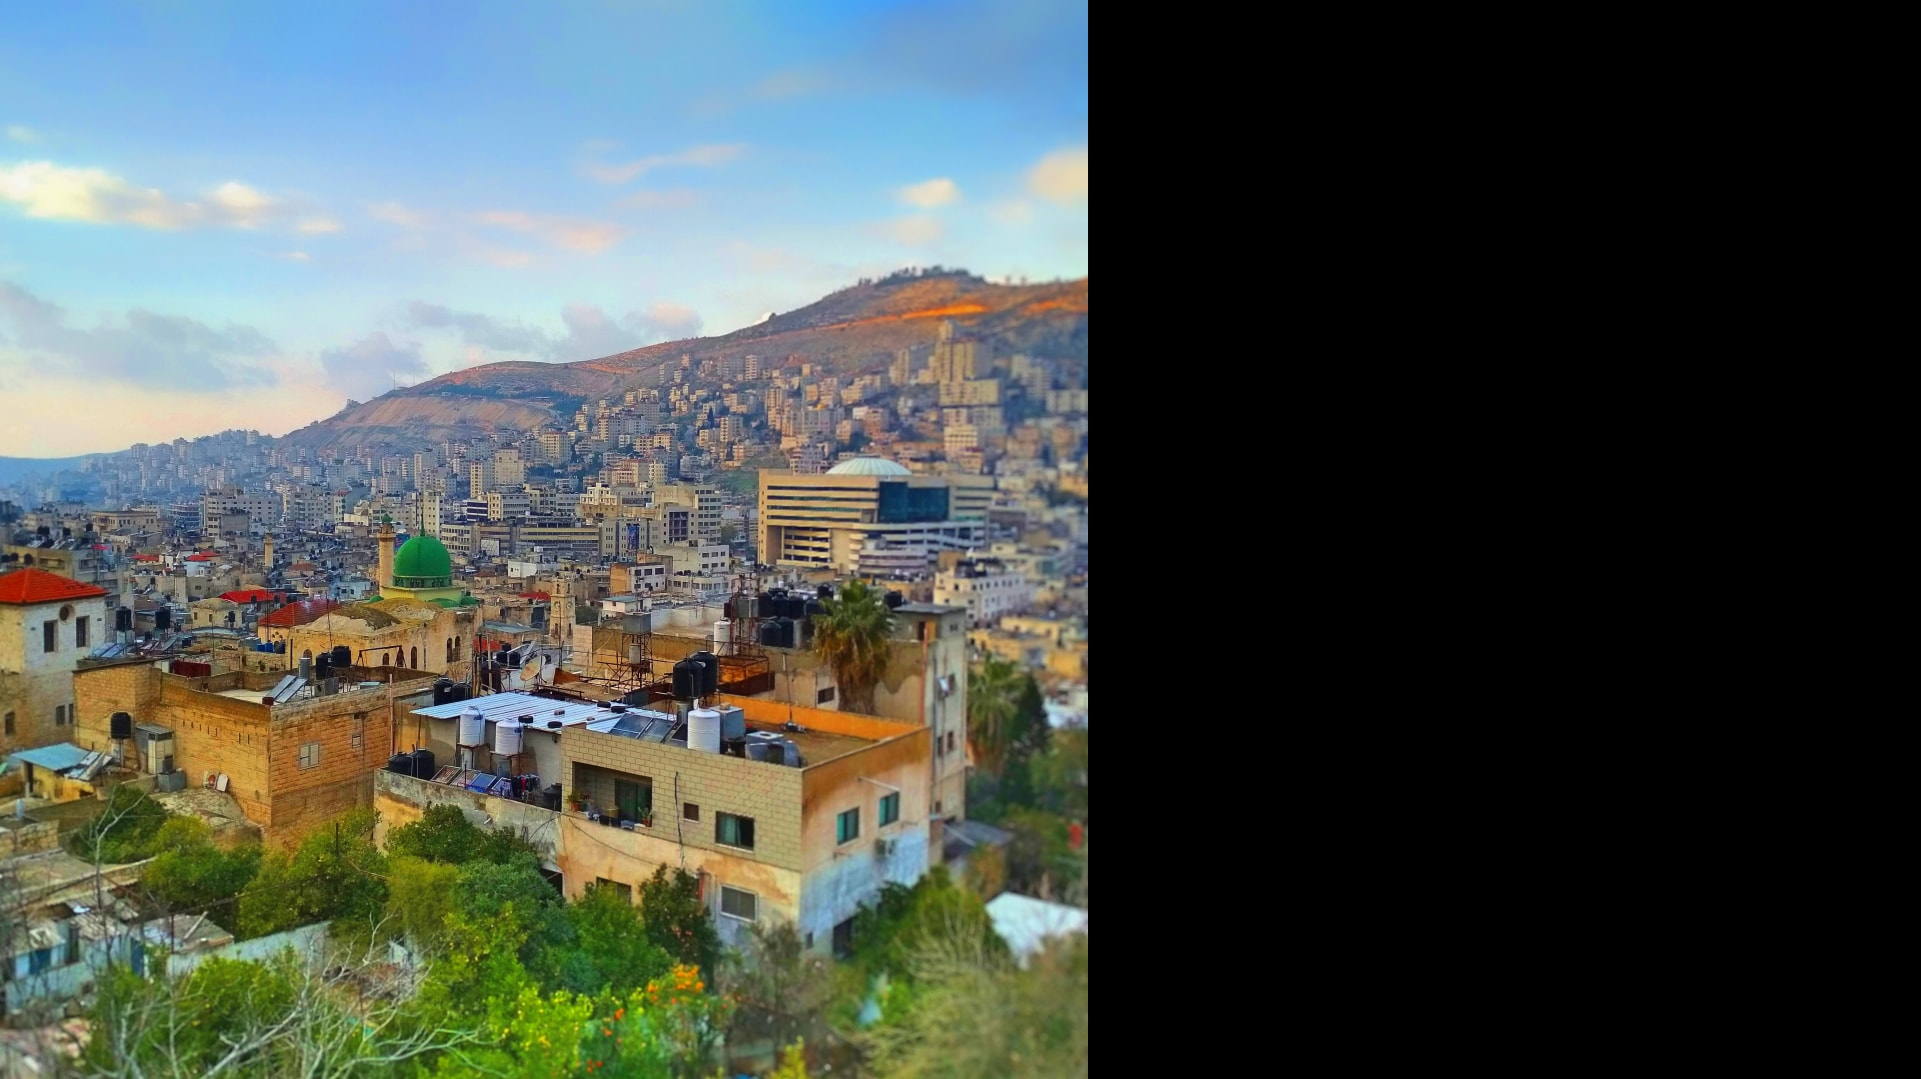 Palestine in photos: Nablus to Ramallah, Jerusalem & Jericho, a look at urban life